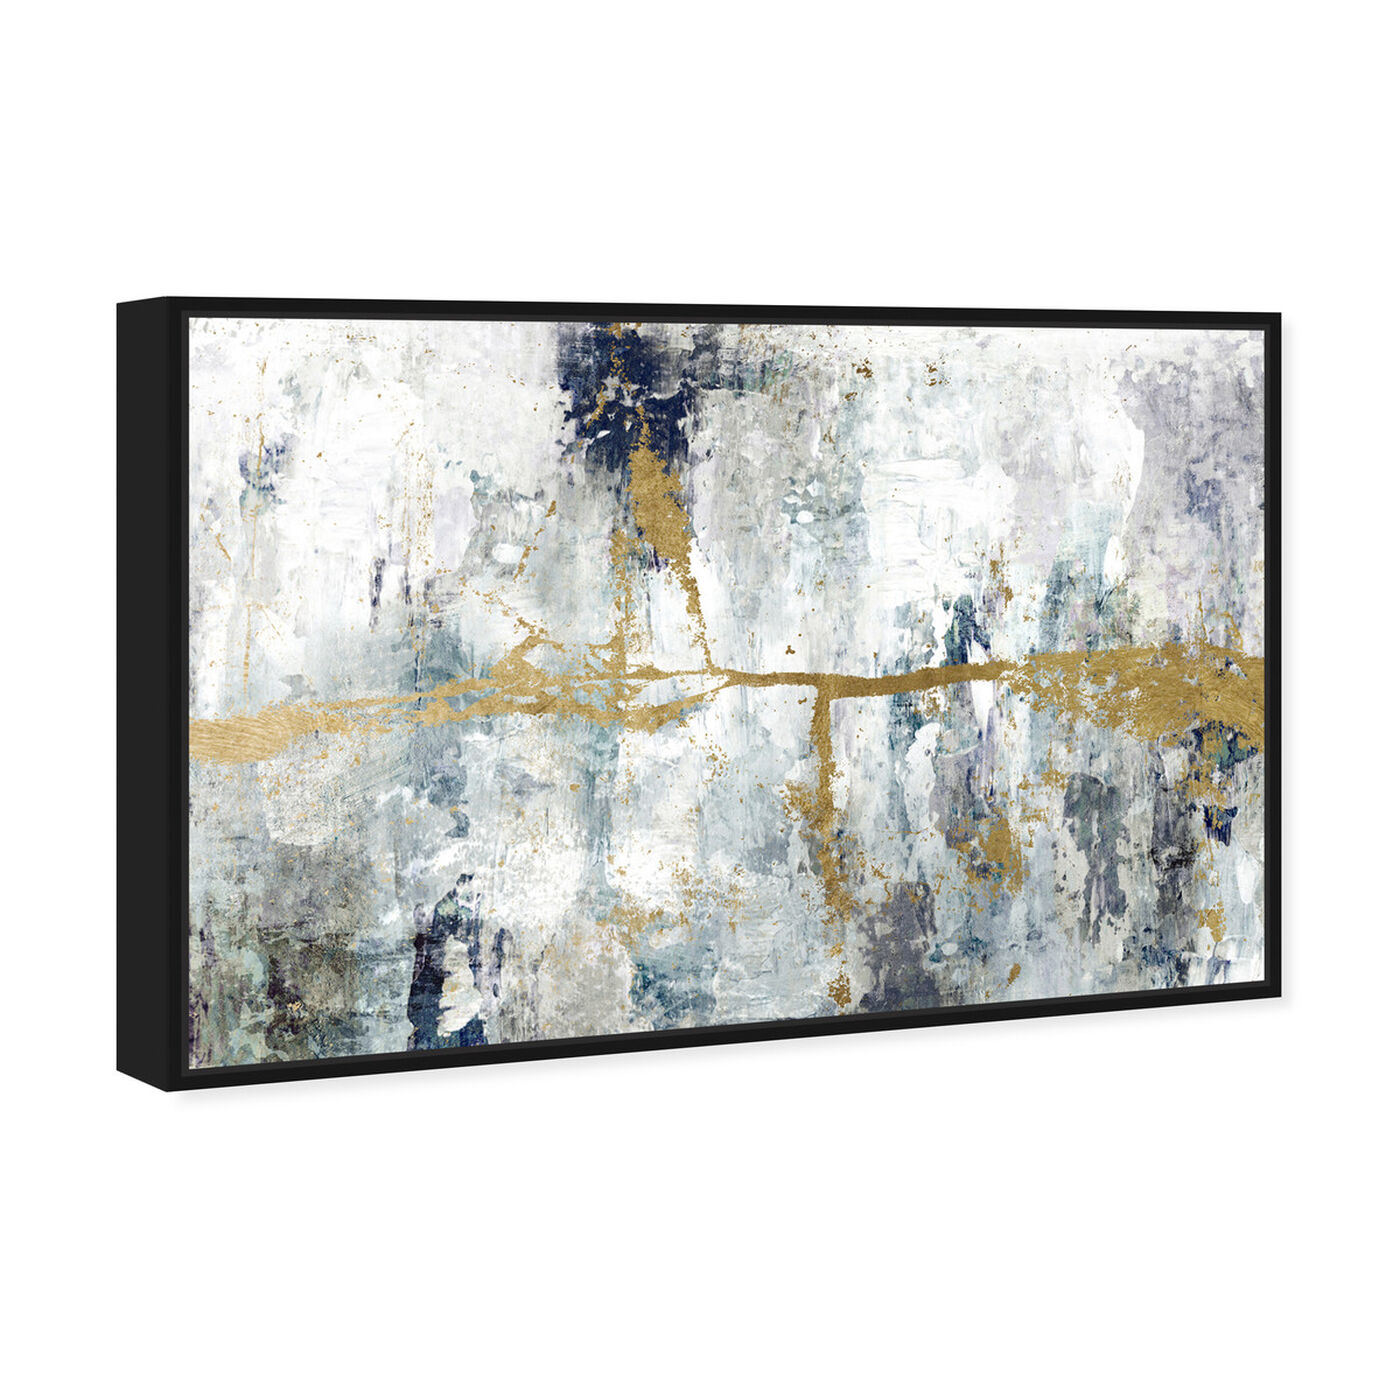 Angled view of Ocean Divide featuring abstract and paint art.